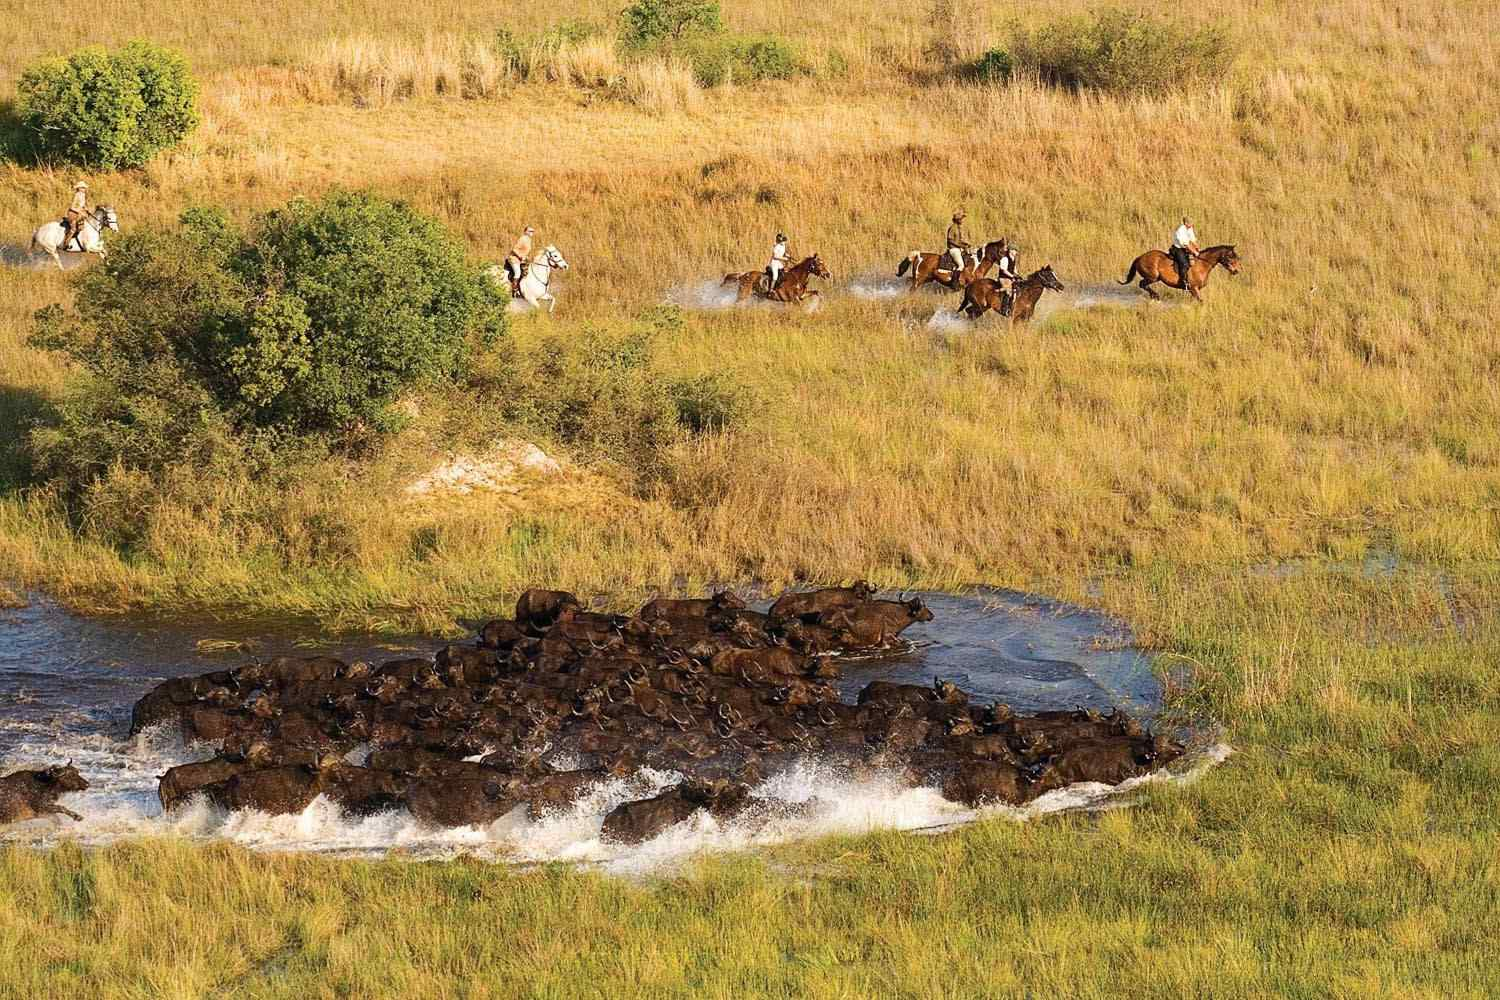 Horse riding safari okavango delta